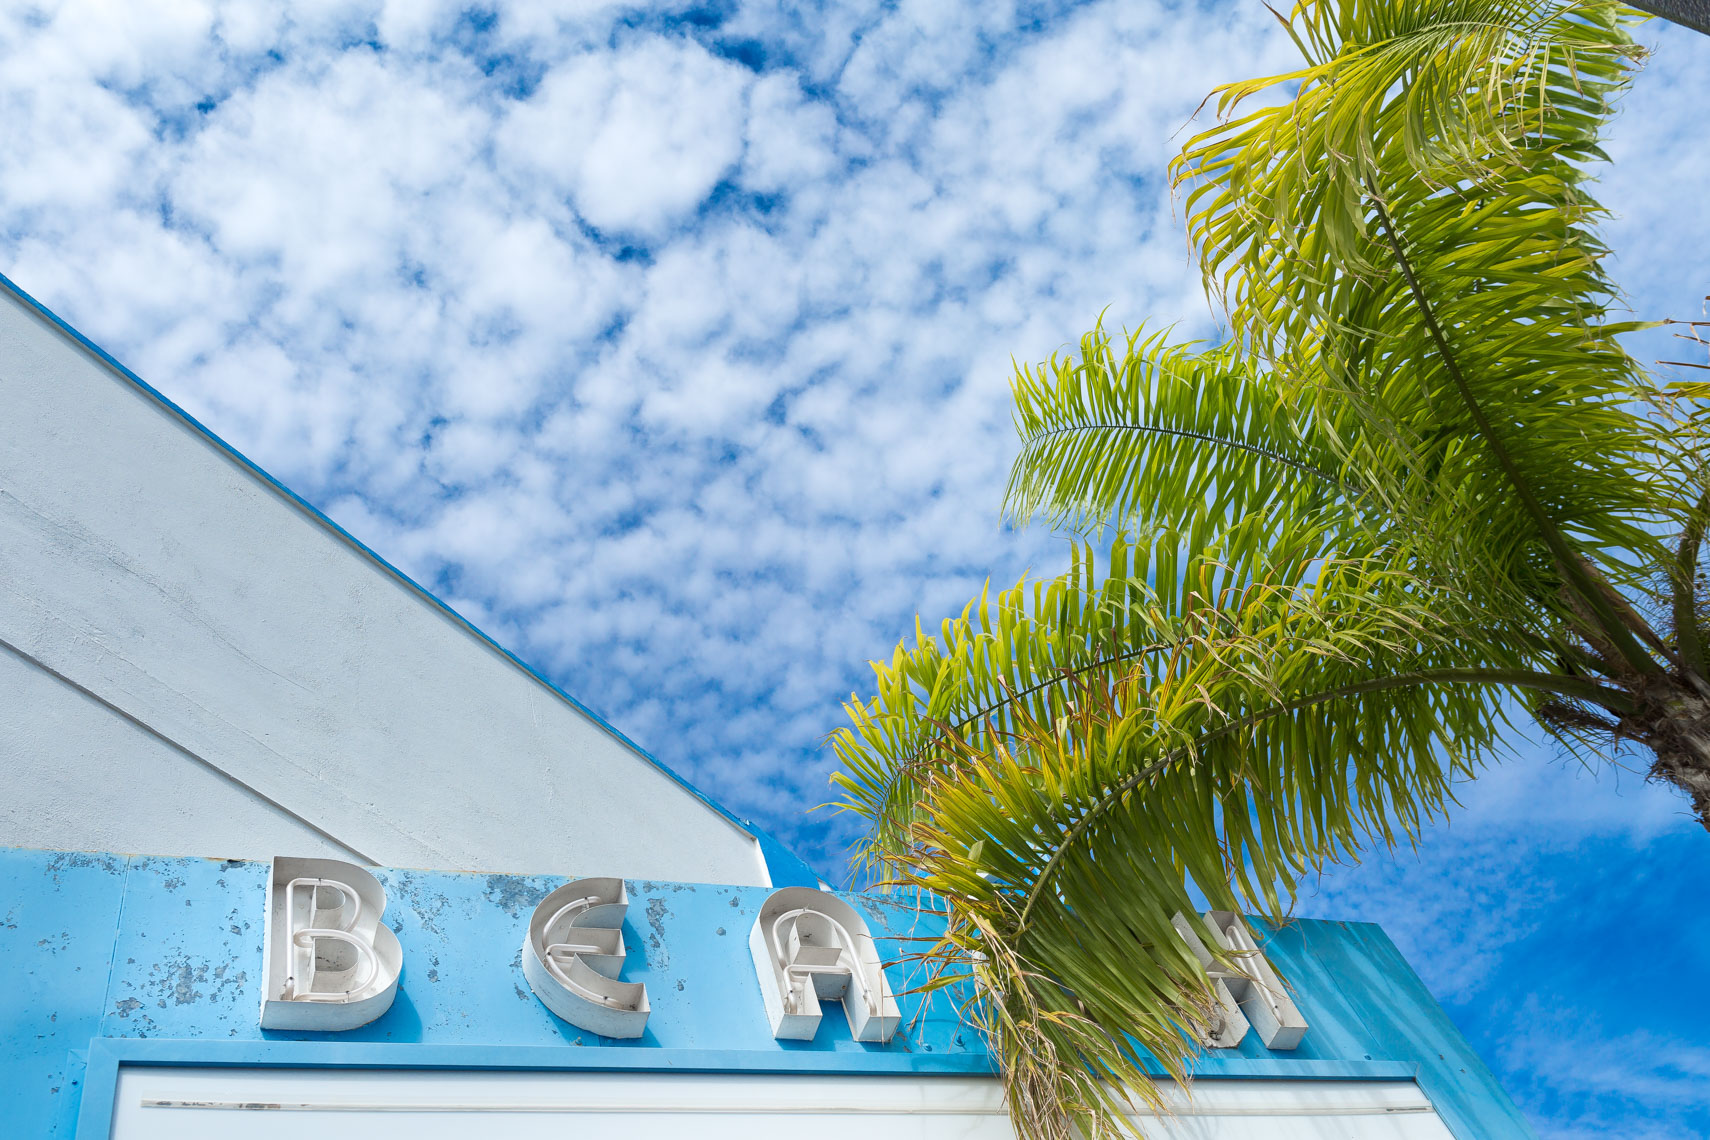 blue sky behind building in florida, shot by Steven P. Widoff, editorial, lifestyle and advertising commercial photographer in Tampa, Florida.